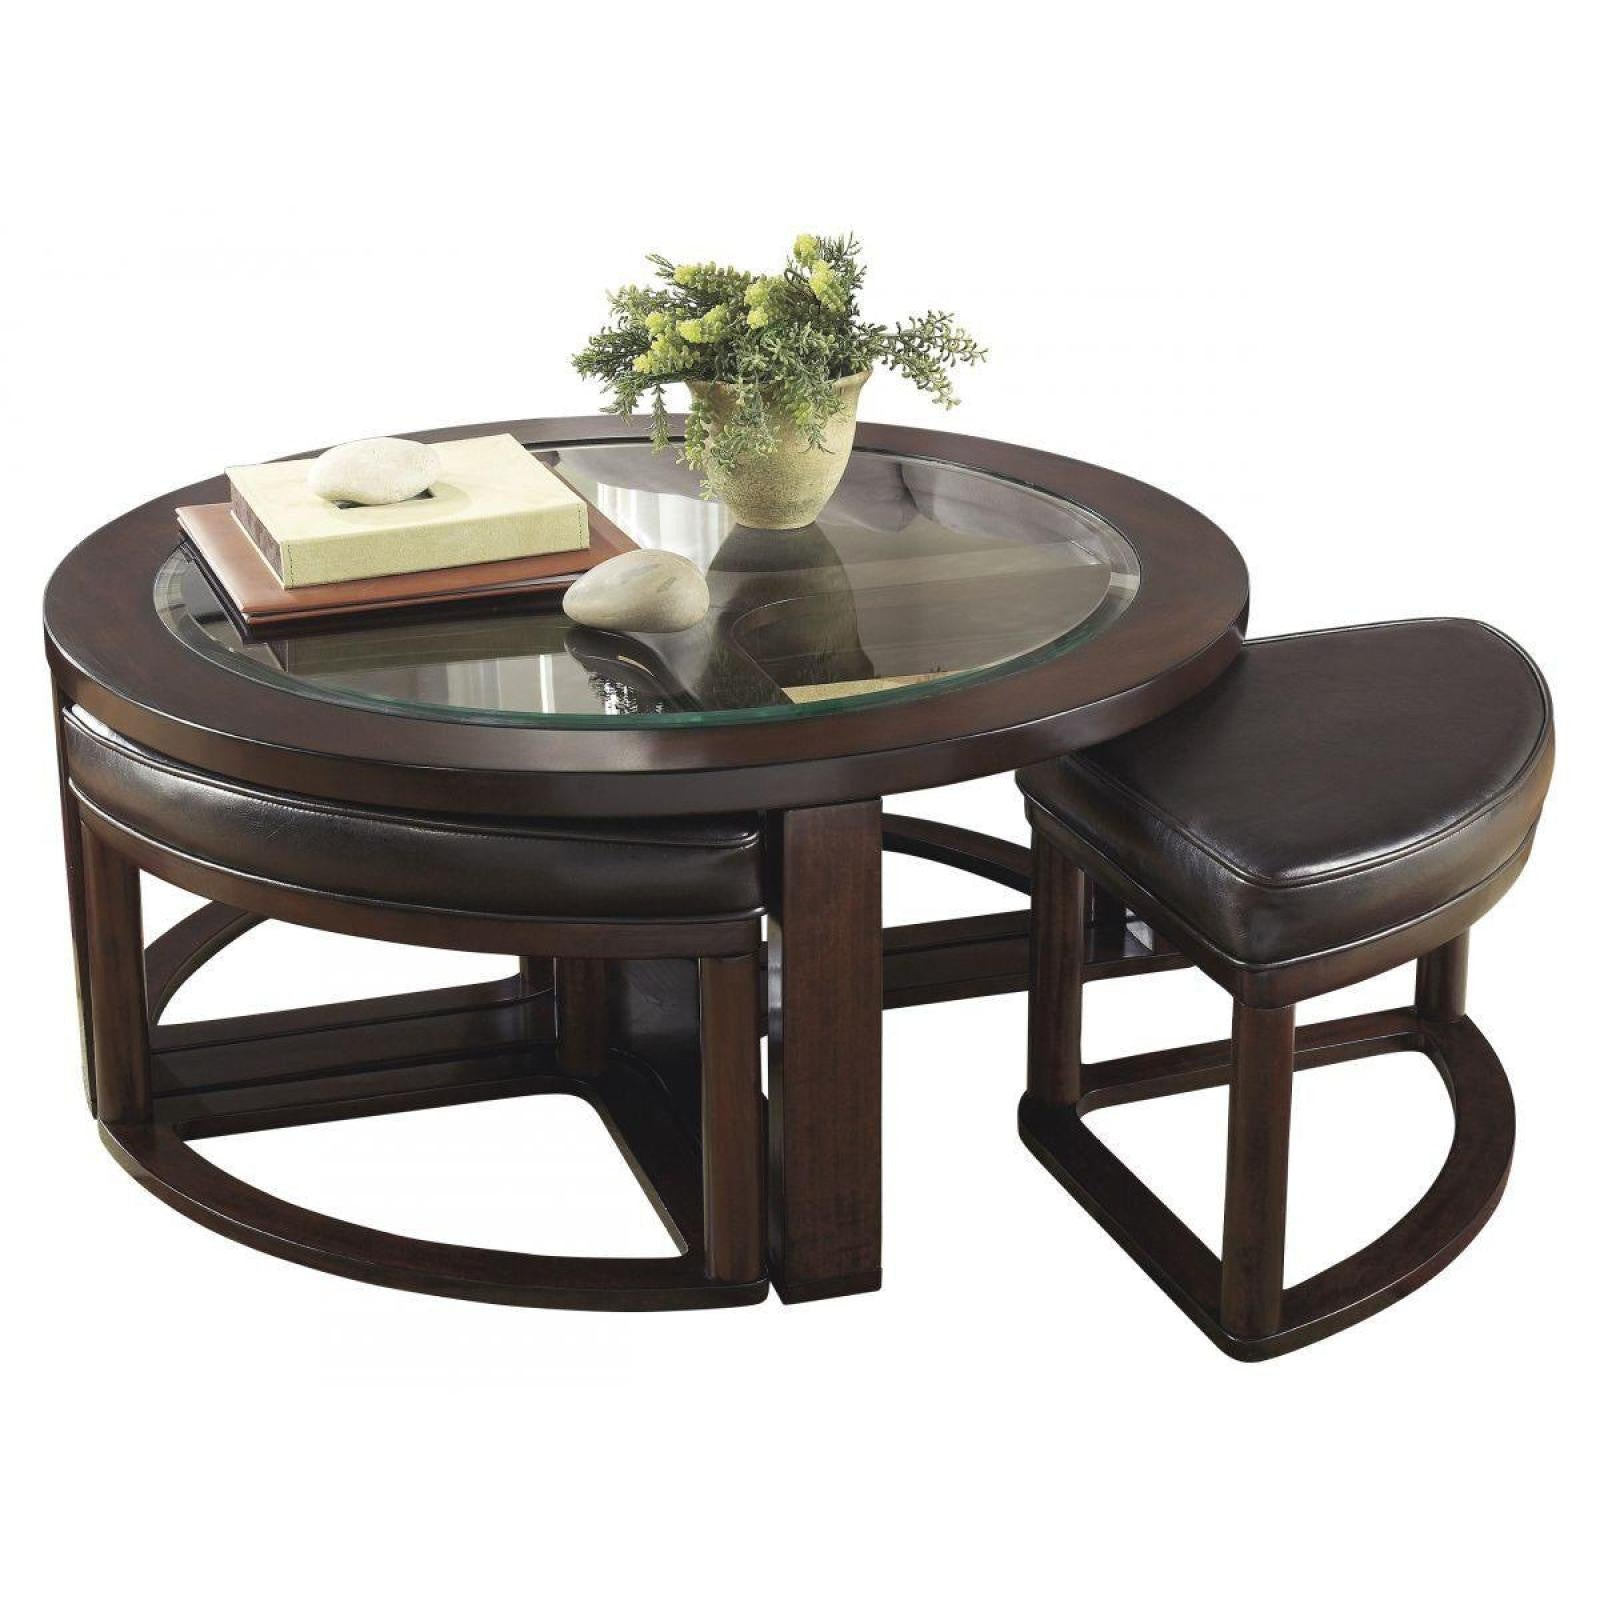 Round Coffee Table With 4 Stools – Adams Furniture